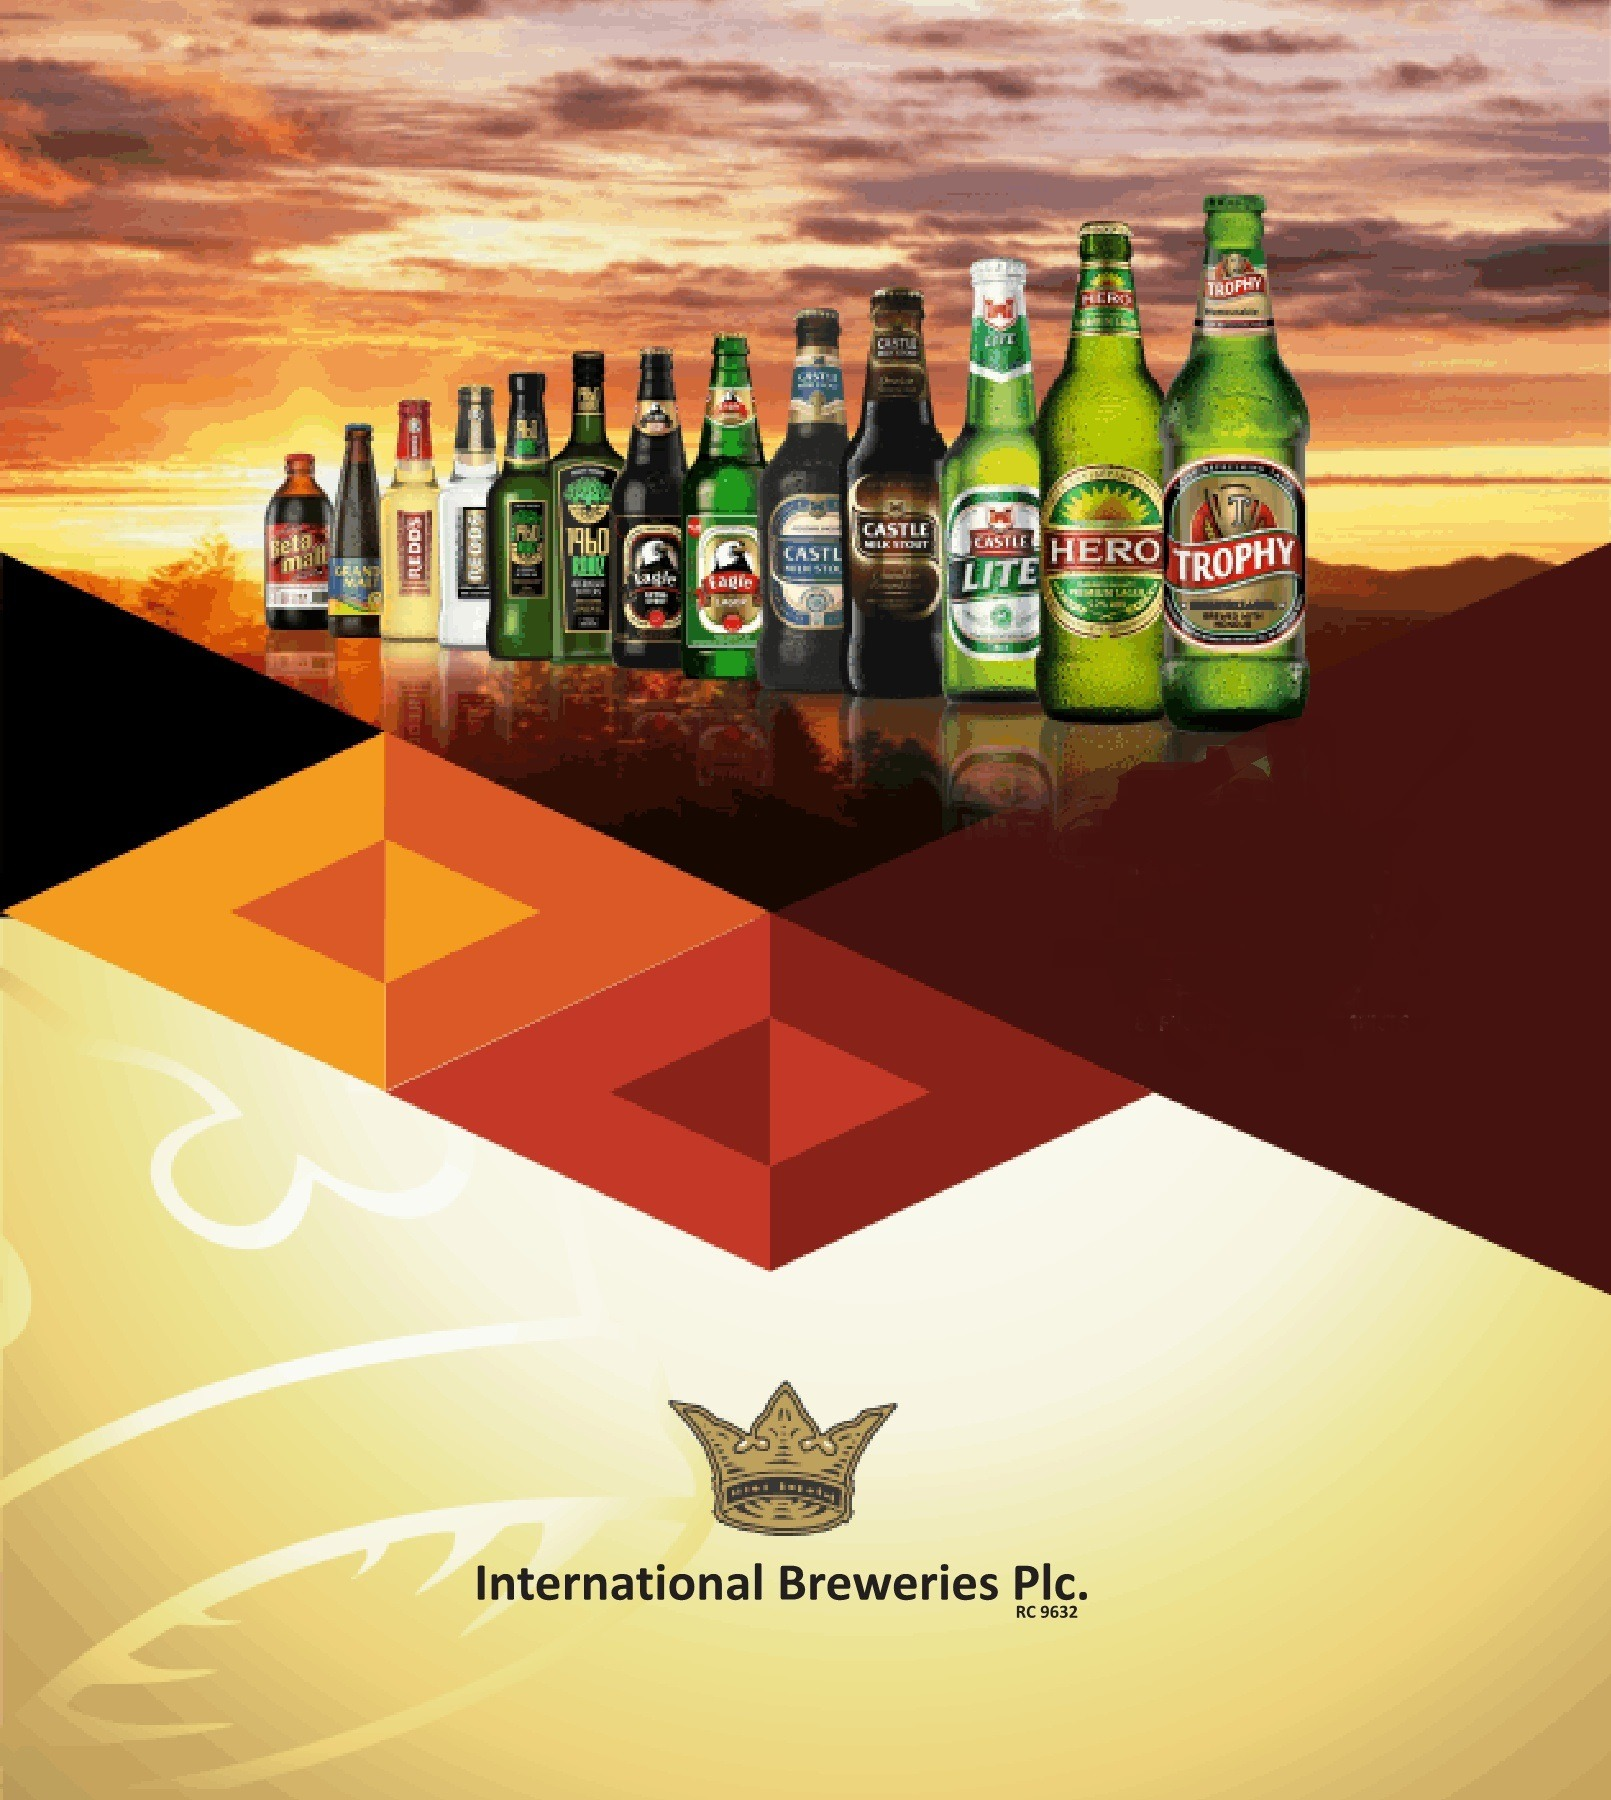 international breweries